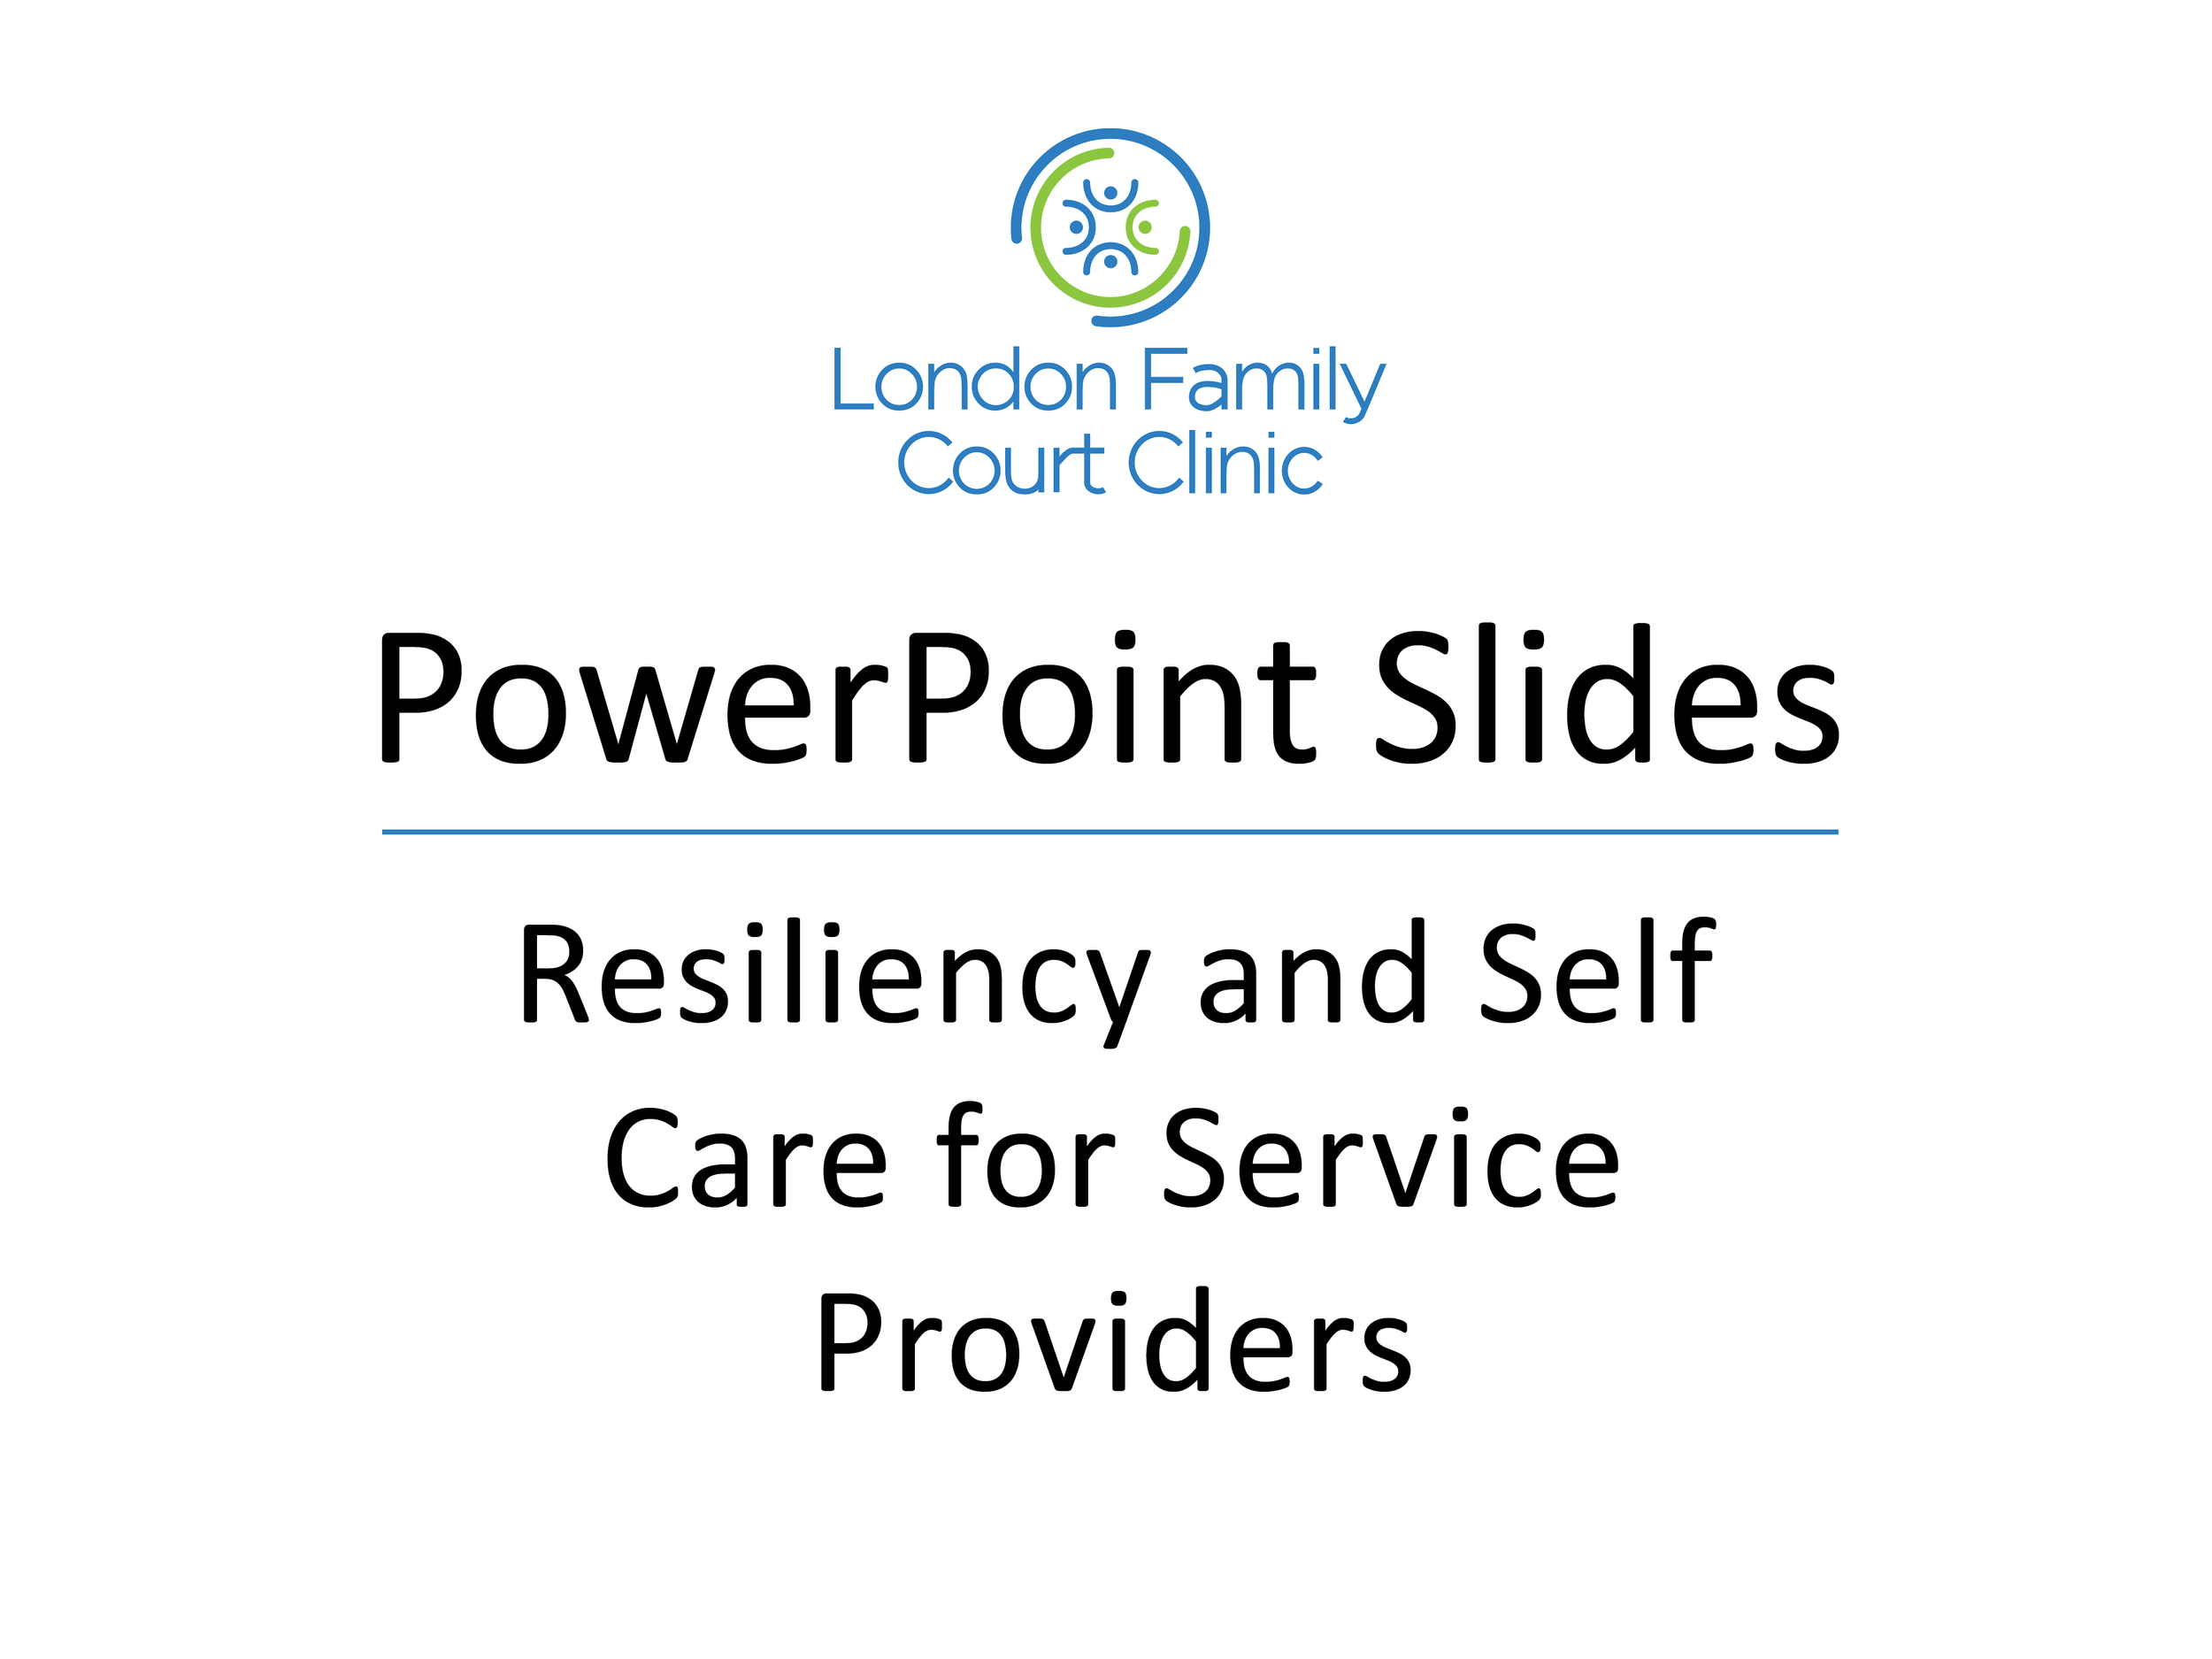 Resiliency and Self Care for Service Providers.png